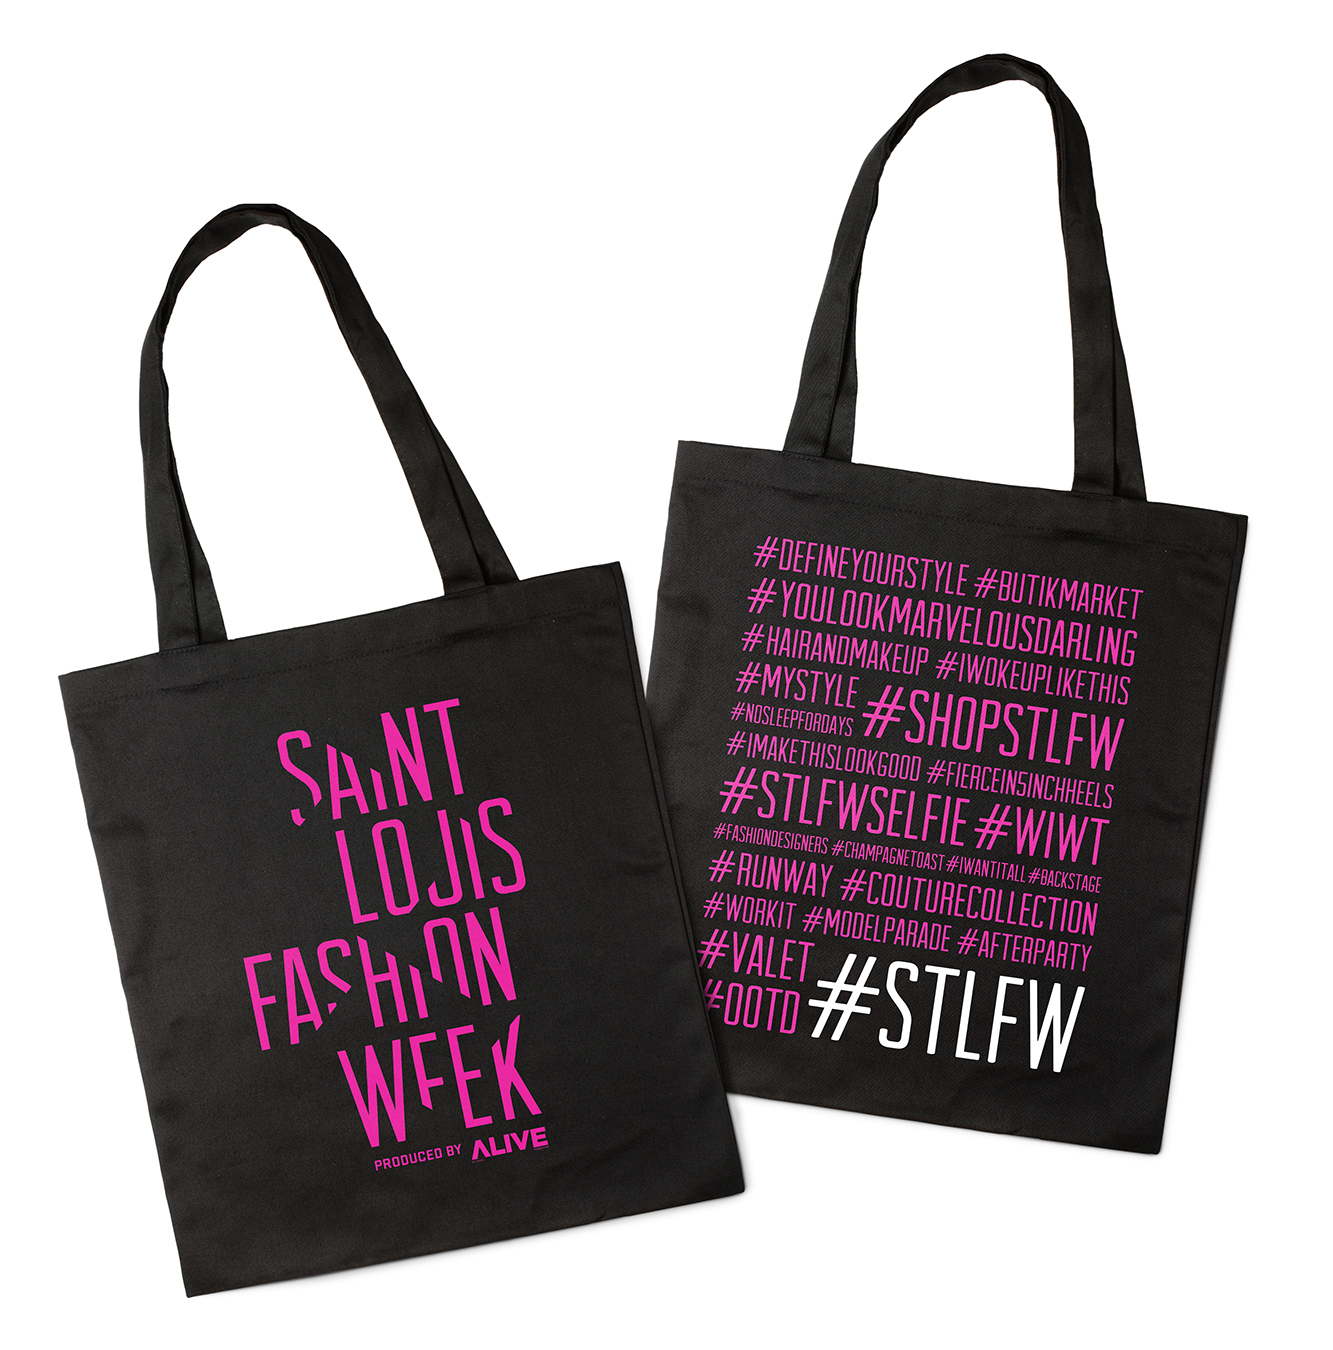 Saint Louis Fashion Week tote bag with fashion-related hashtags